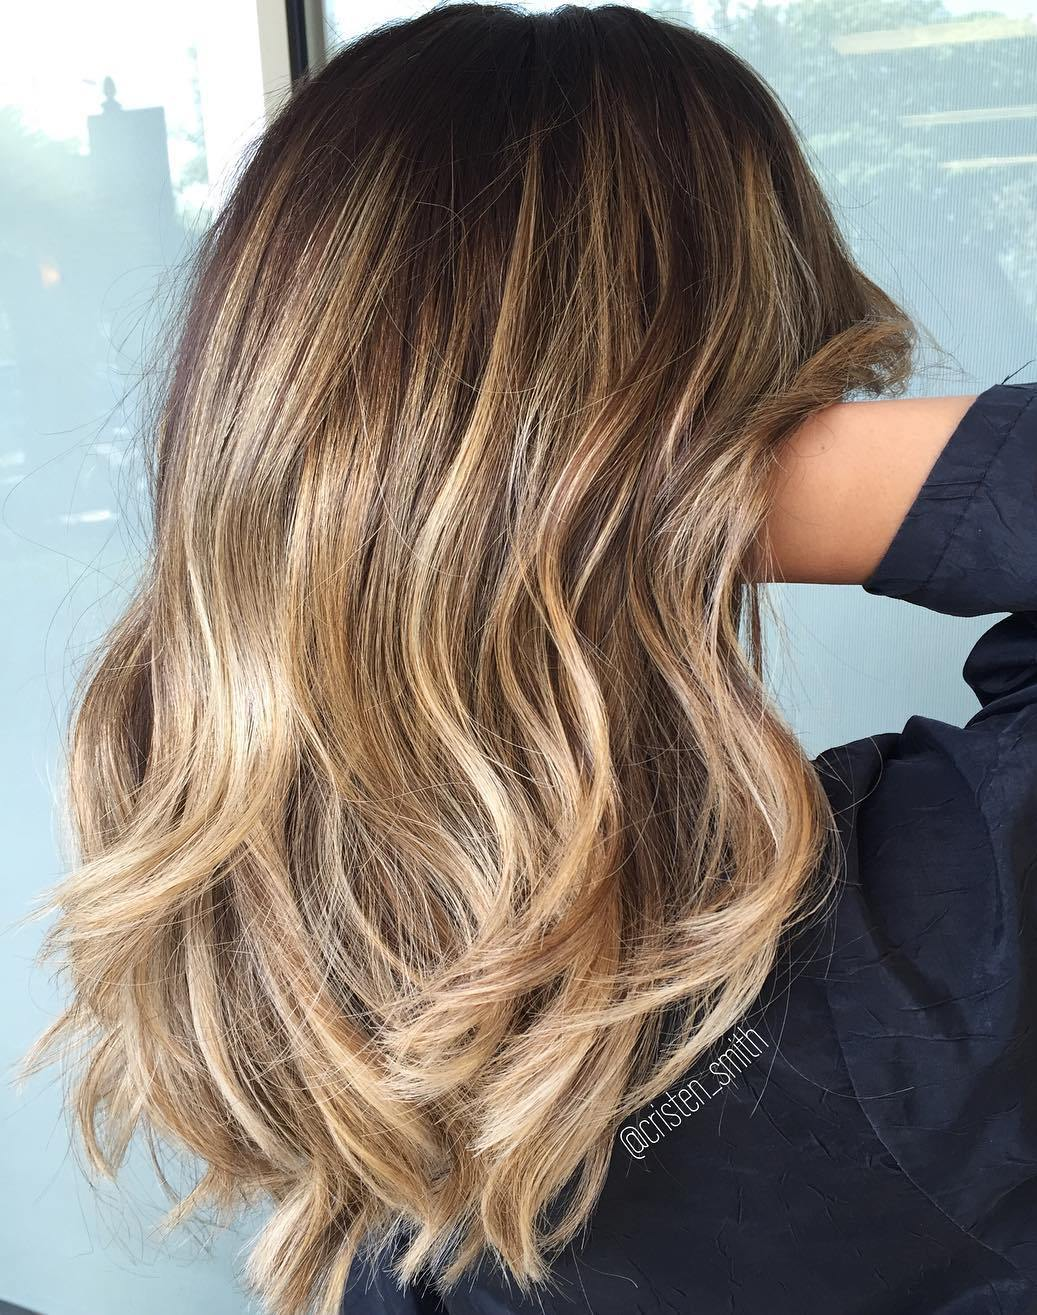 The best balayage hair color ideas for 2018 90 flattering styles - Coupe ombre hair ...